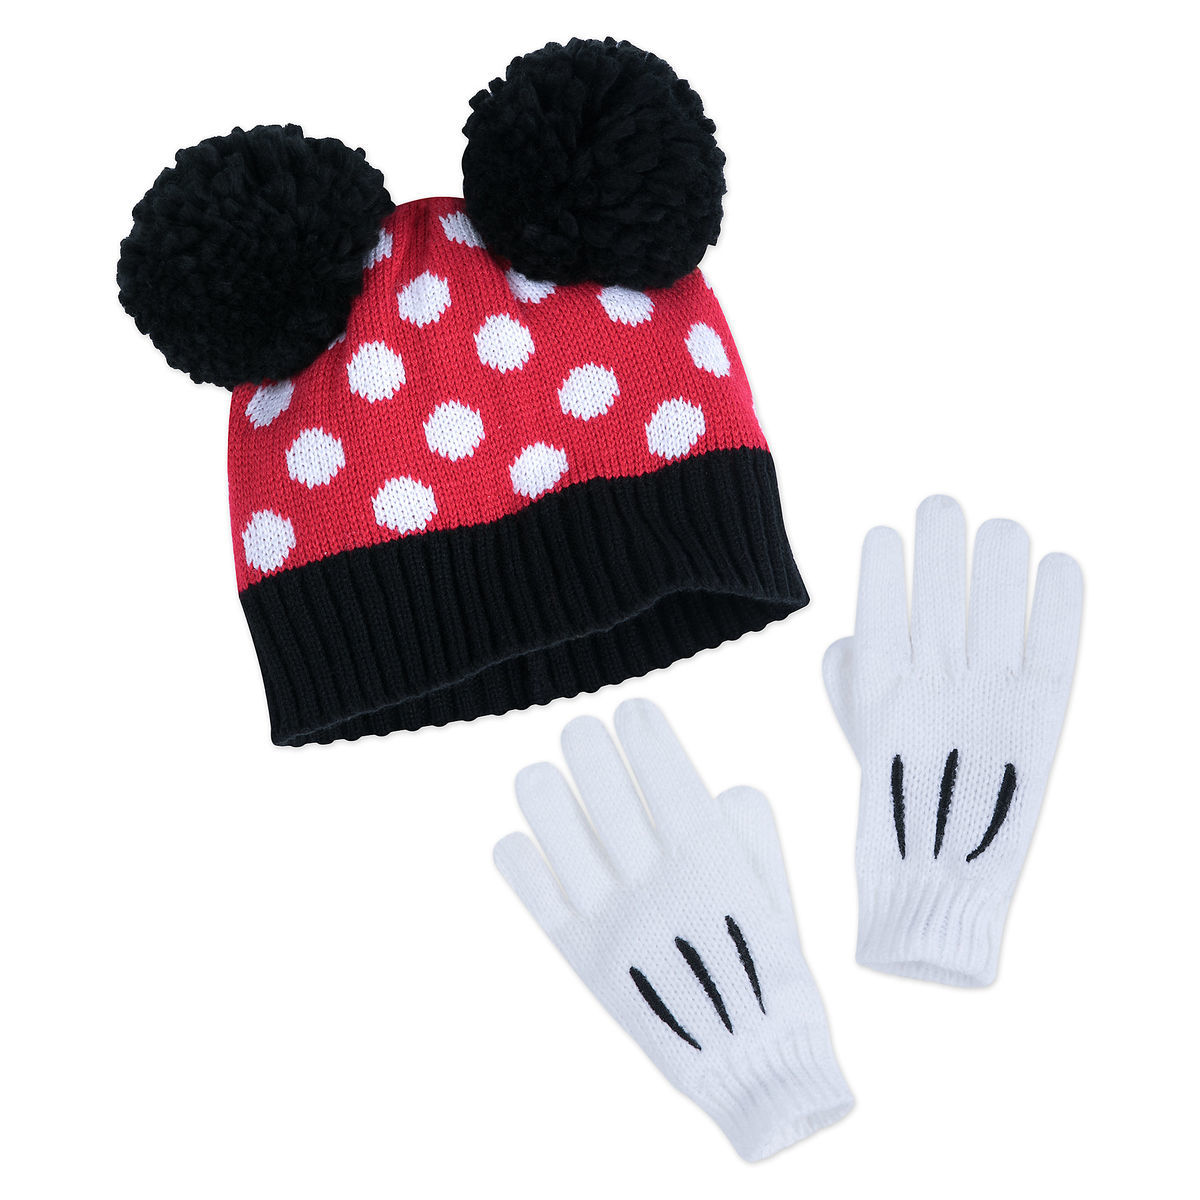 403eb884800 Product Image of Minnie Mouse Hat and Glove Set for Kids   1